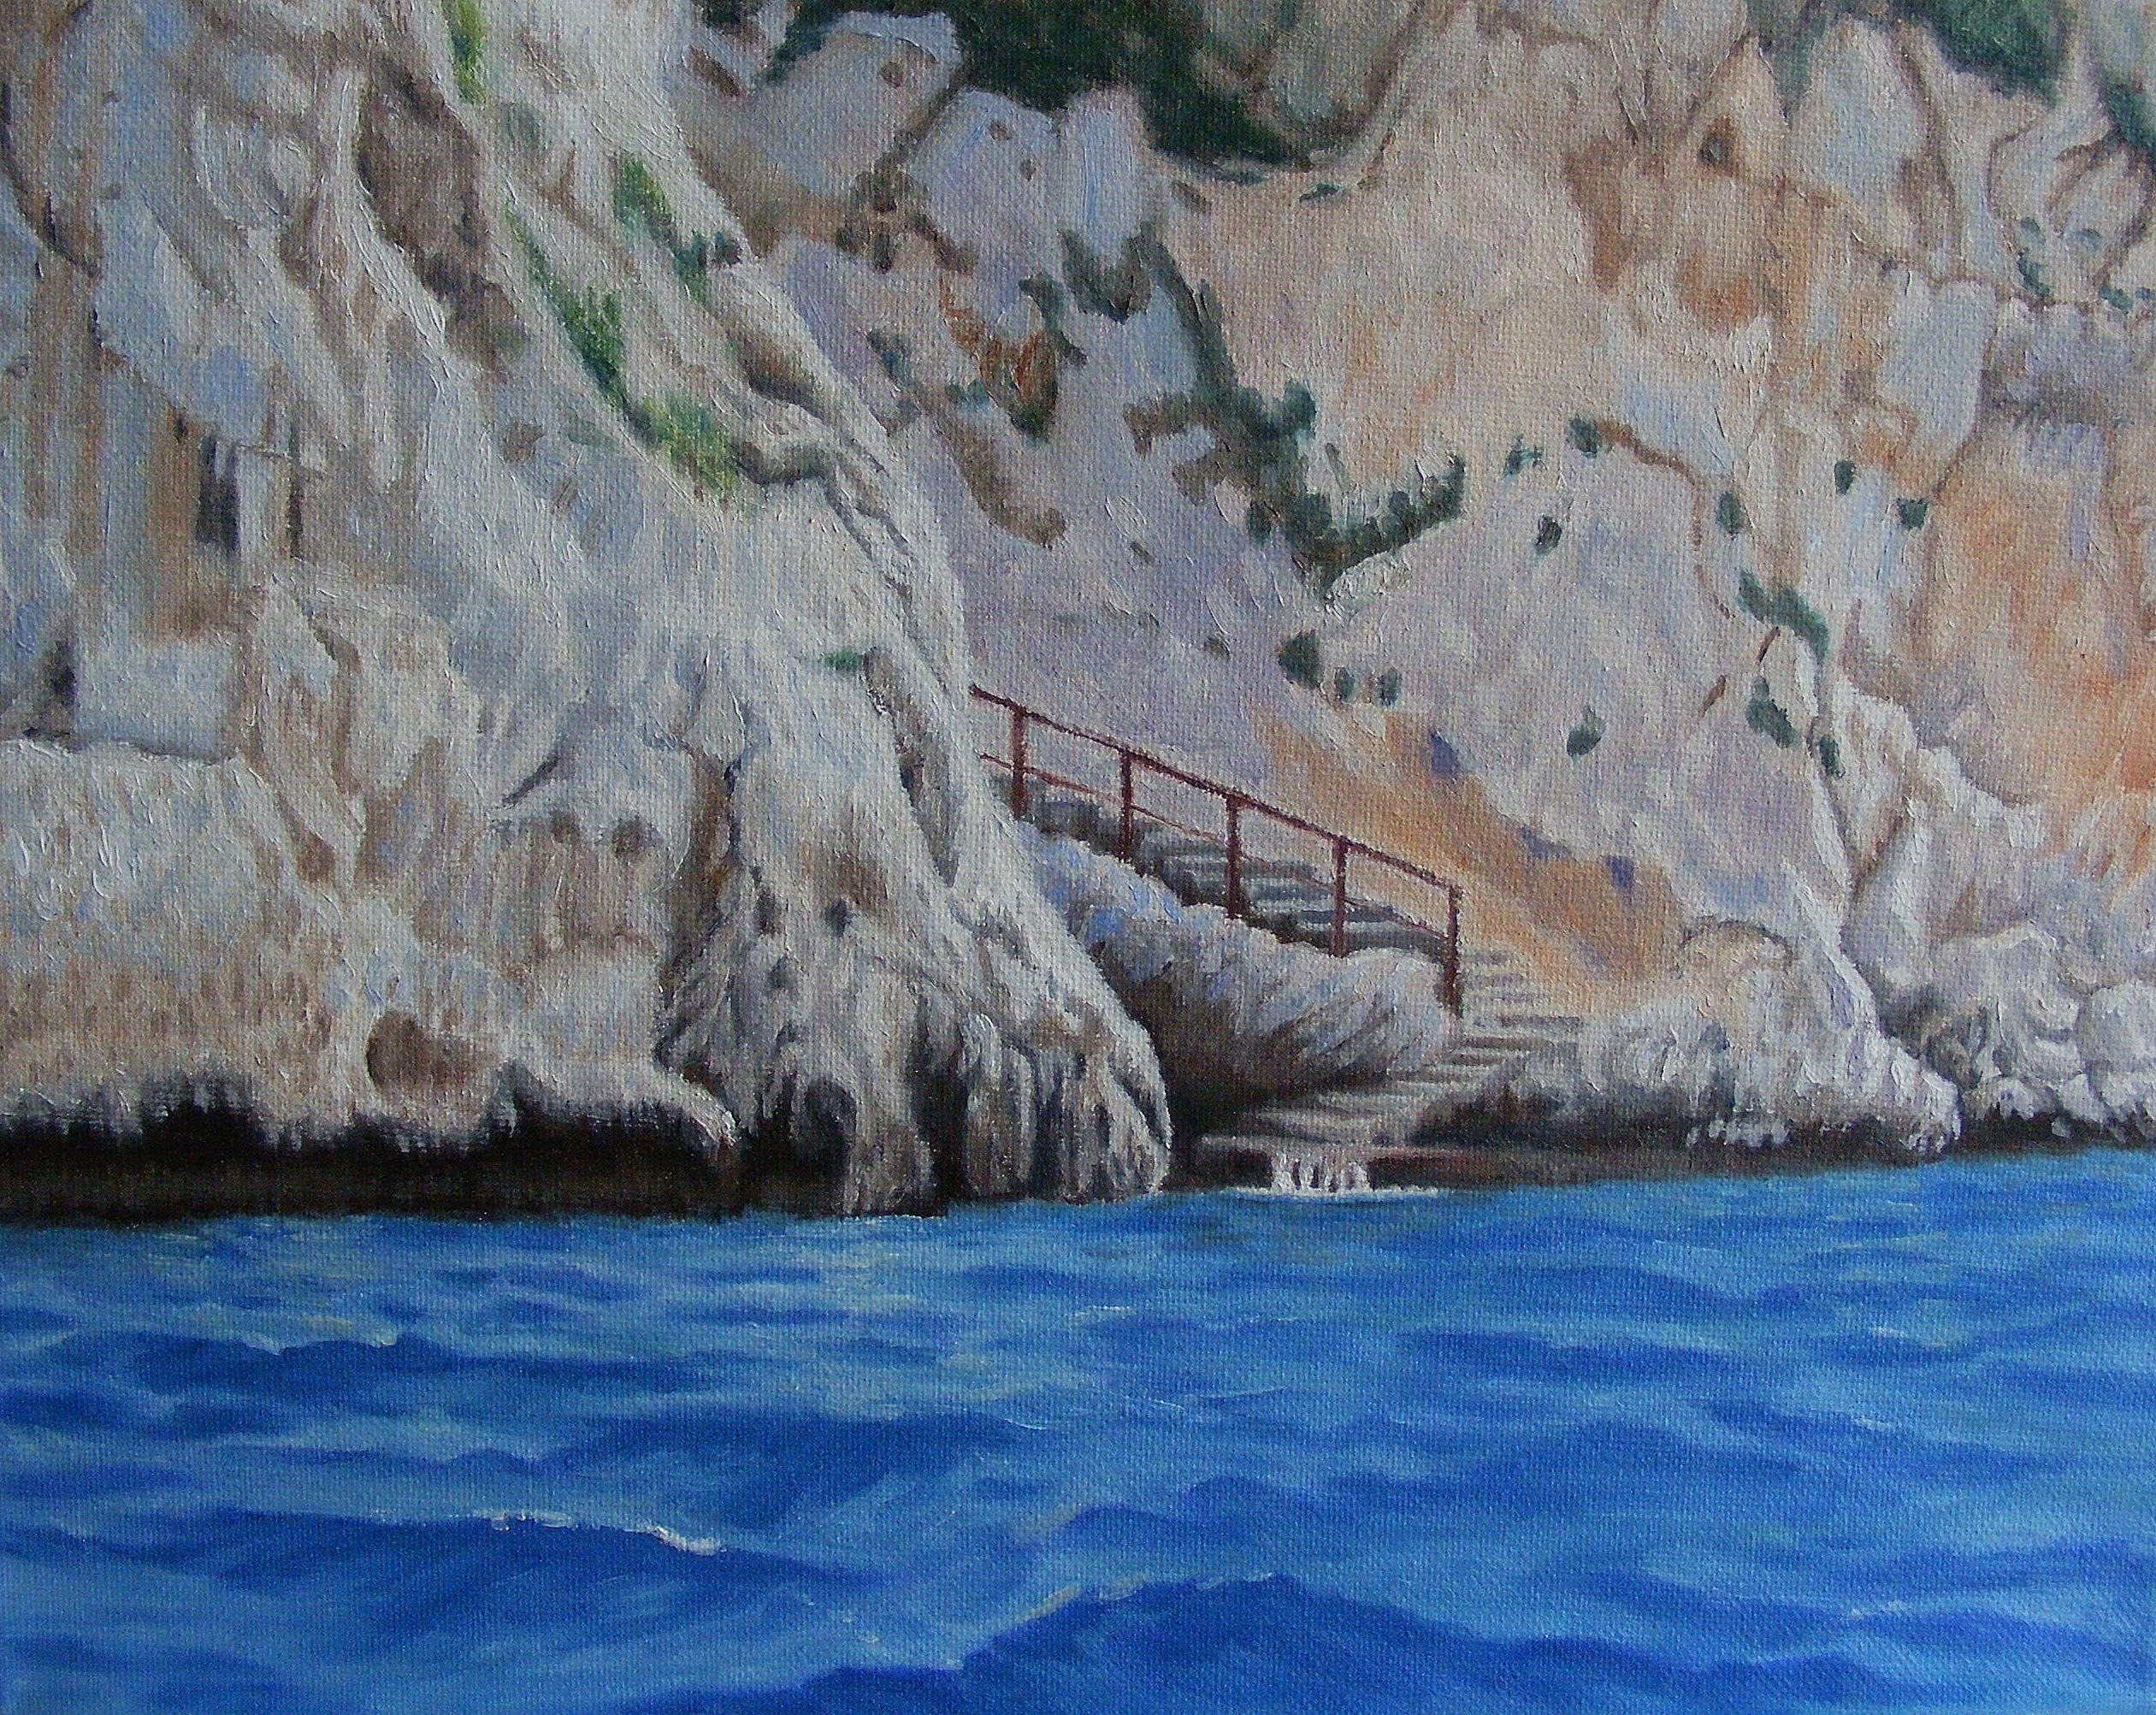 stairway-near-blue-grotto-capri-island-italy-oil-11-x-14-inches-2015-anne-doane.-all-rights-reser.jpg